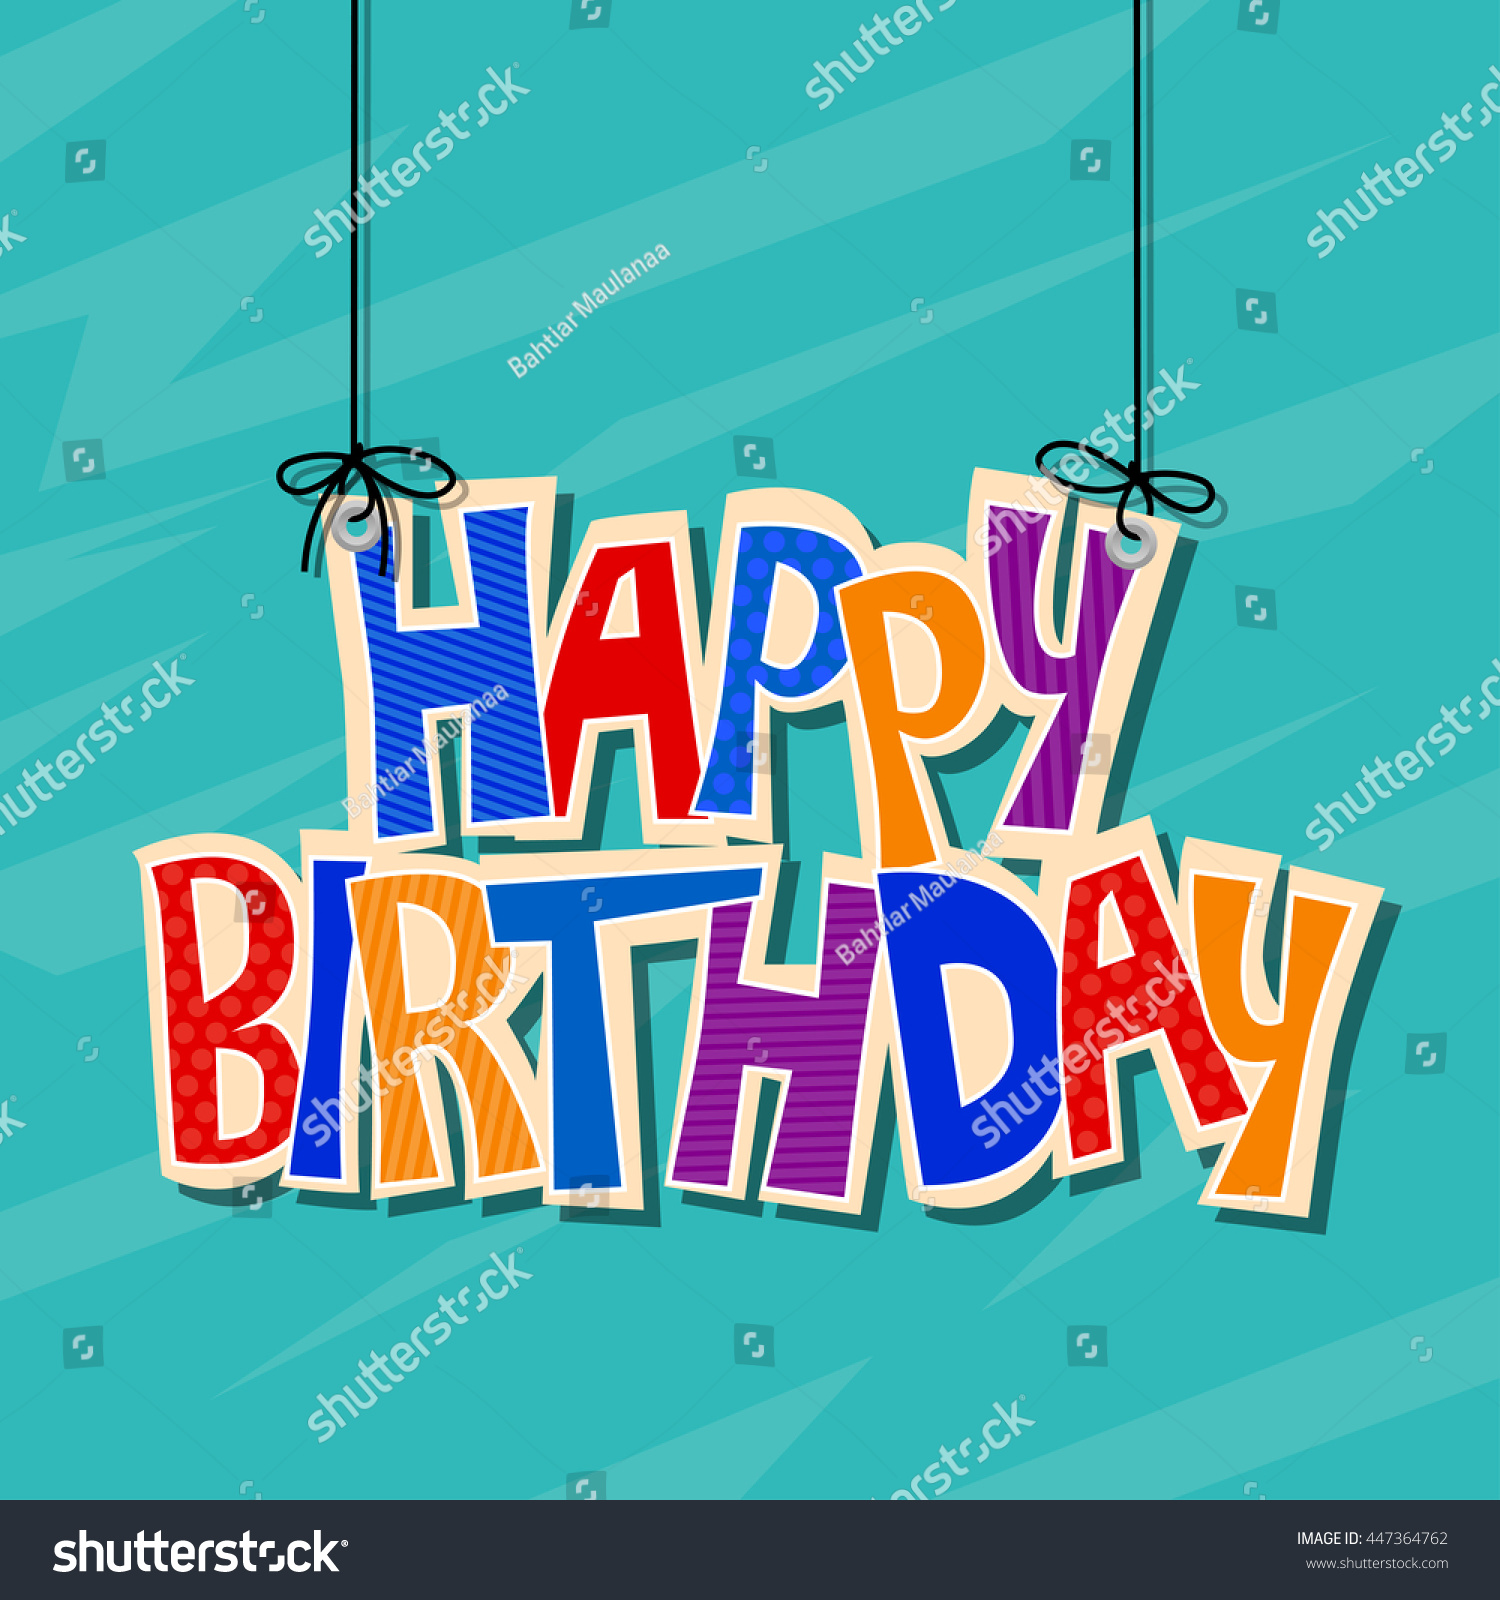 Happy Birthday Greetings Stock Illustration 447364762 Shutterstock